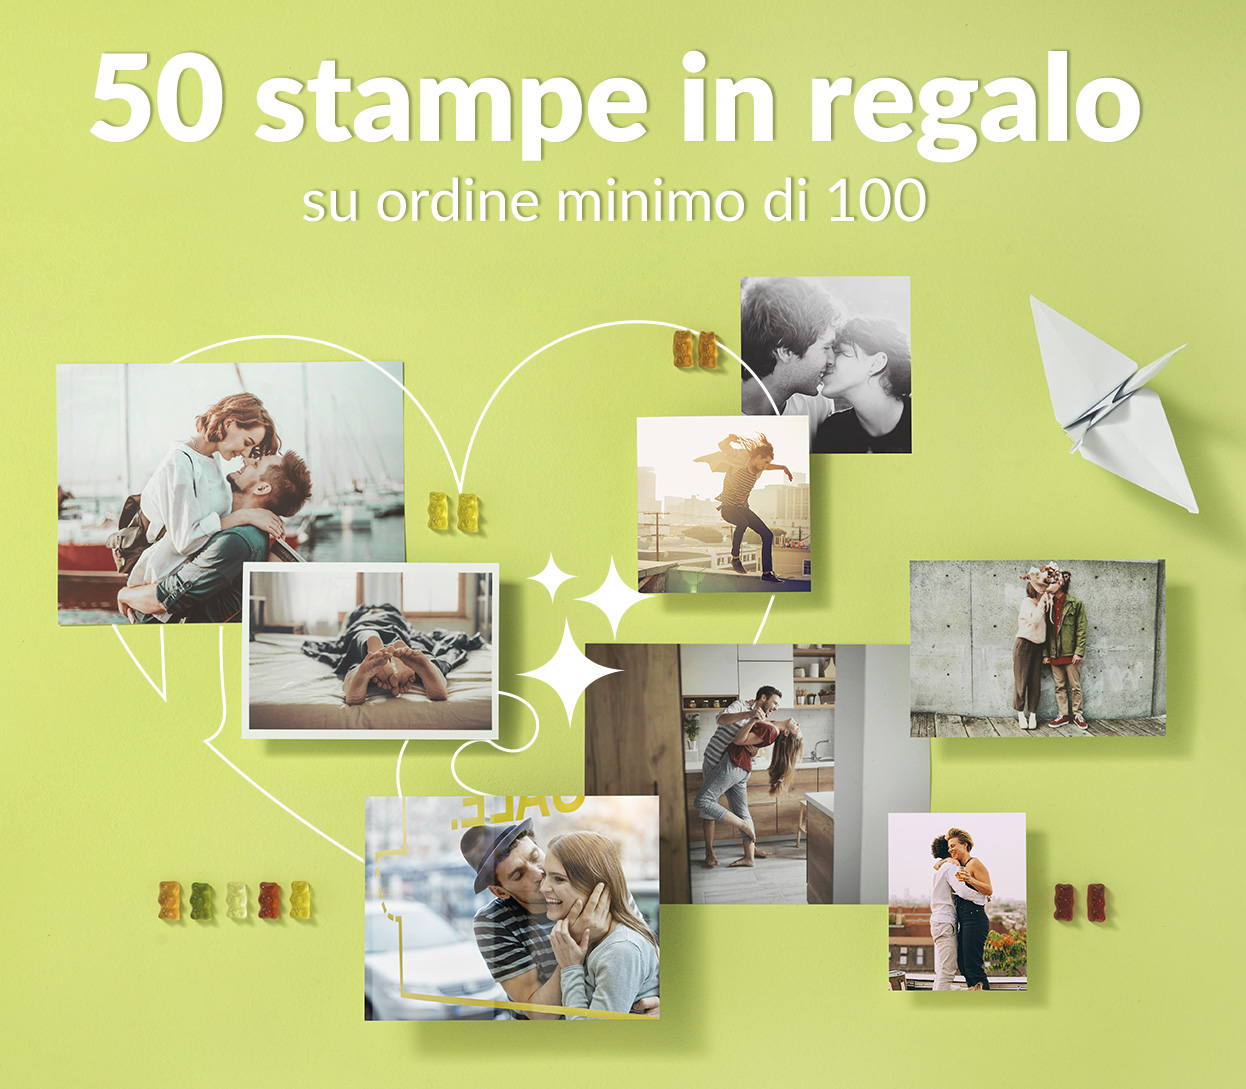 50 Stampe in regalo su ordine min. di 100